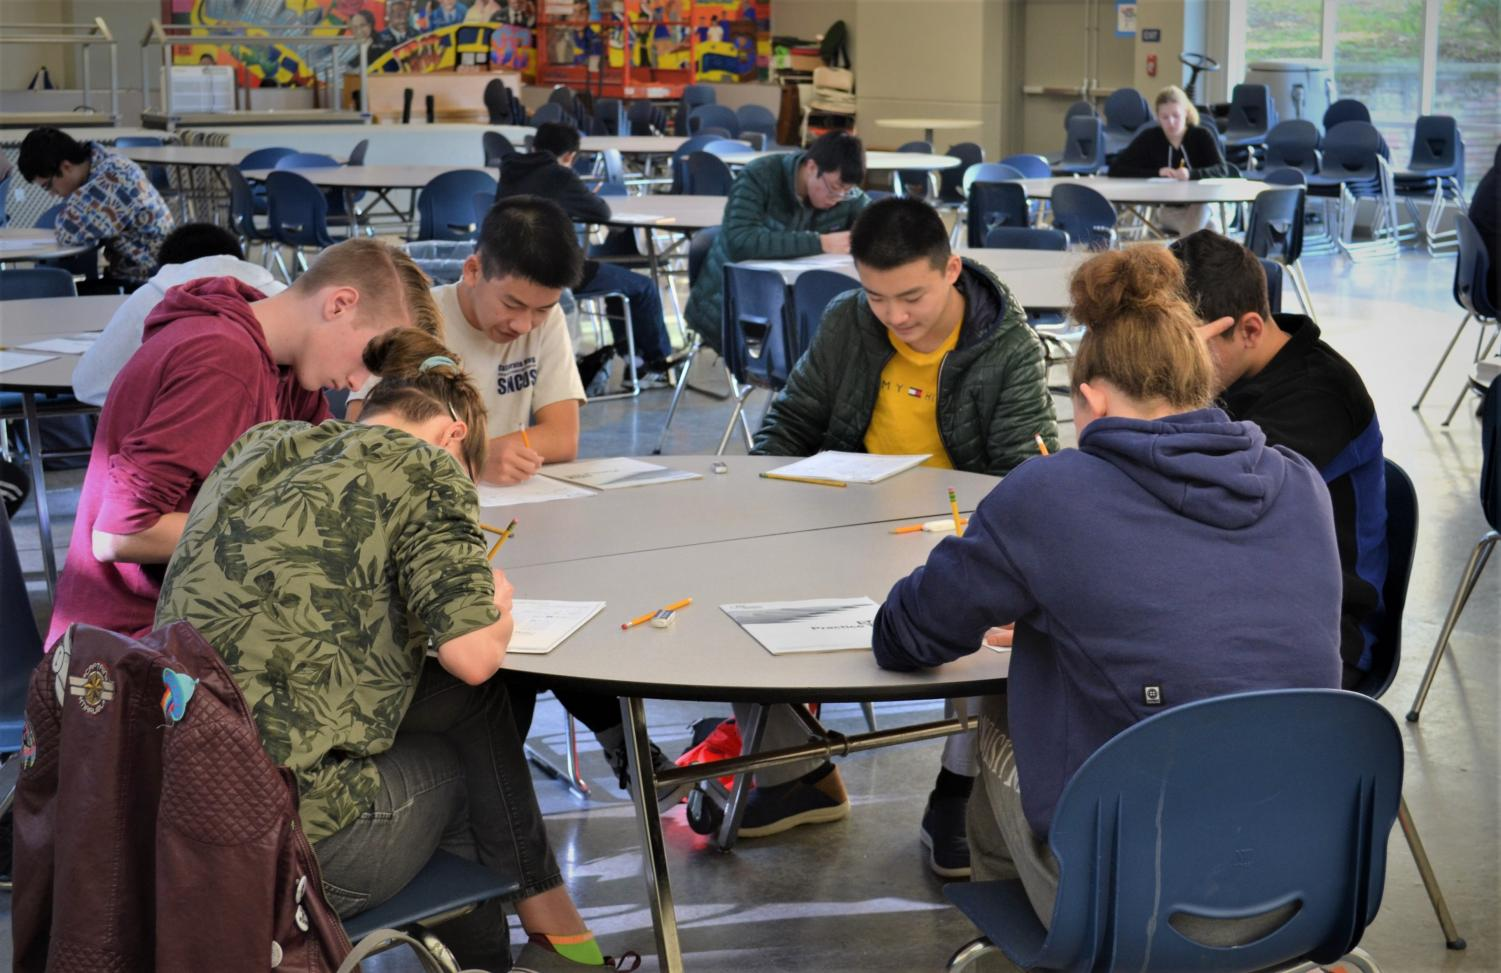 Students fill in their personal information before beginning the mock SAT in the Student Union on Feb. 1.